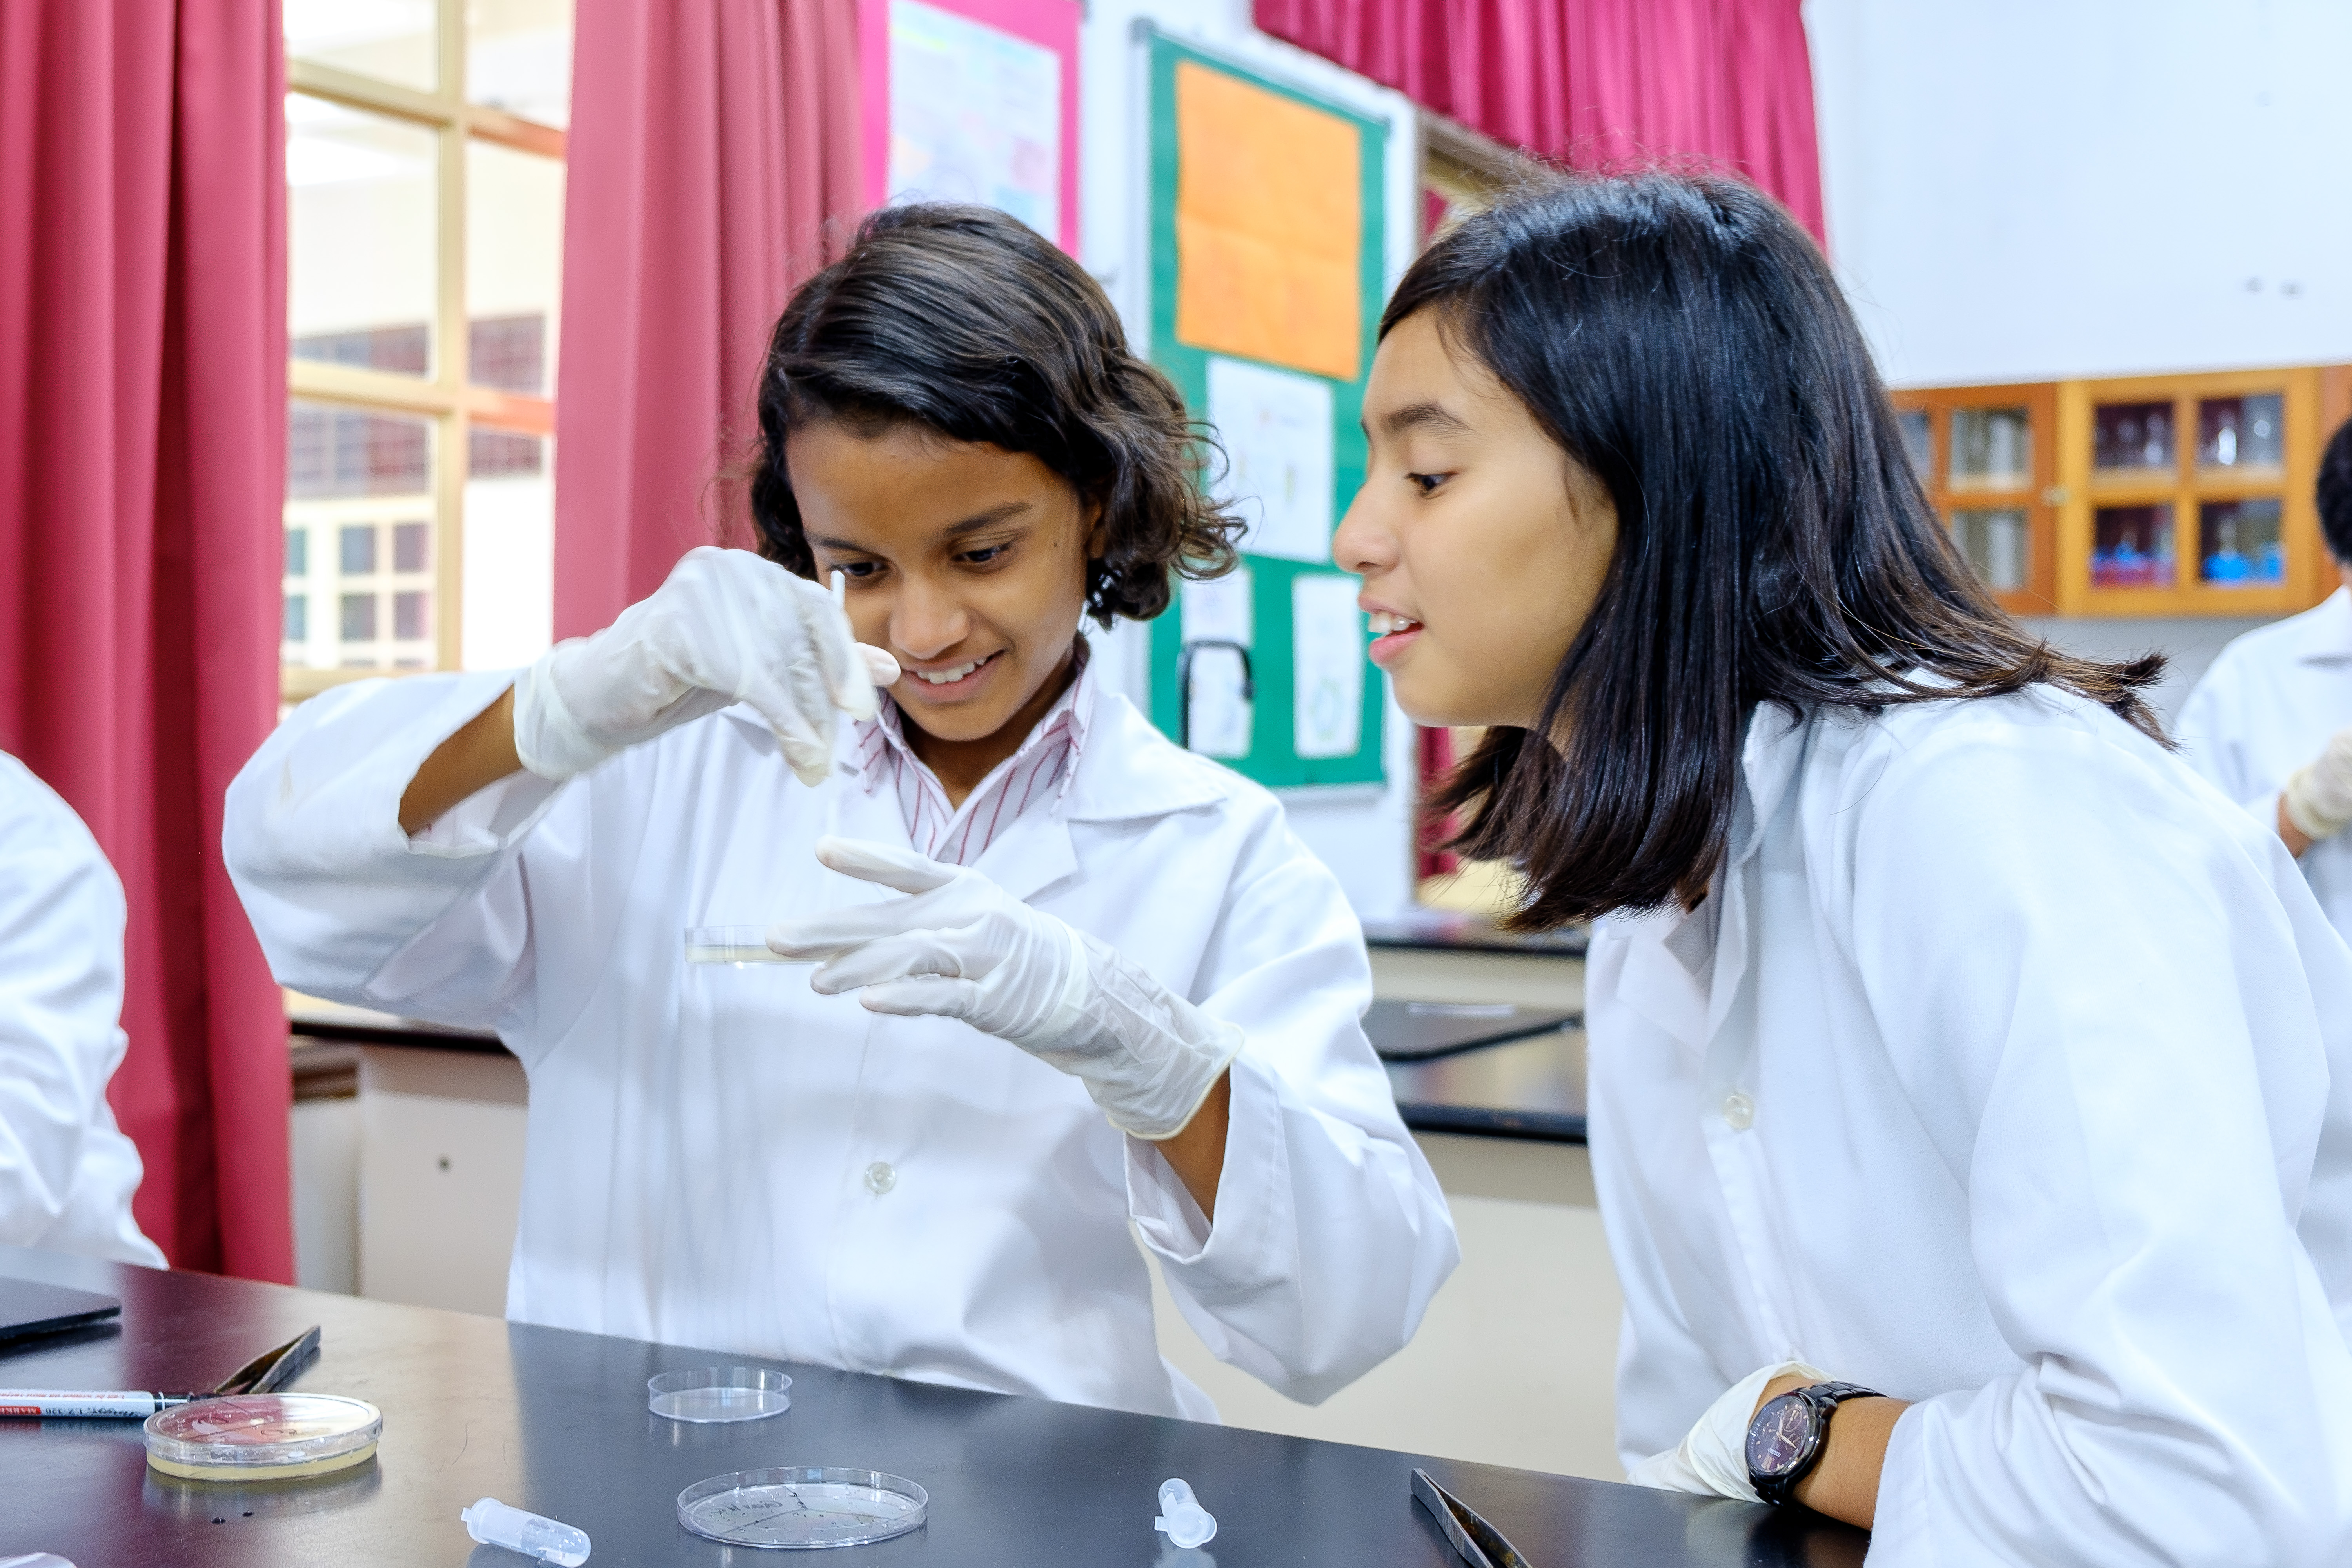 Students conducting a science experiment